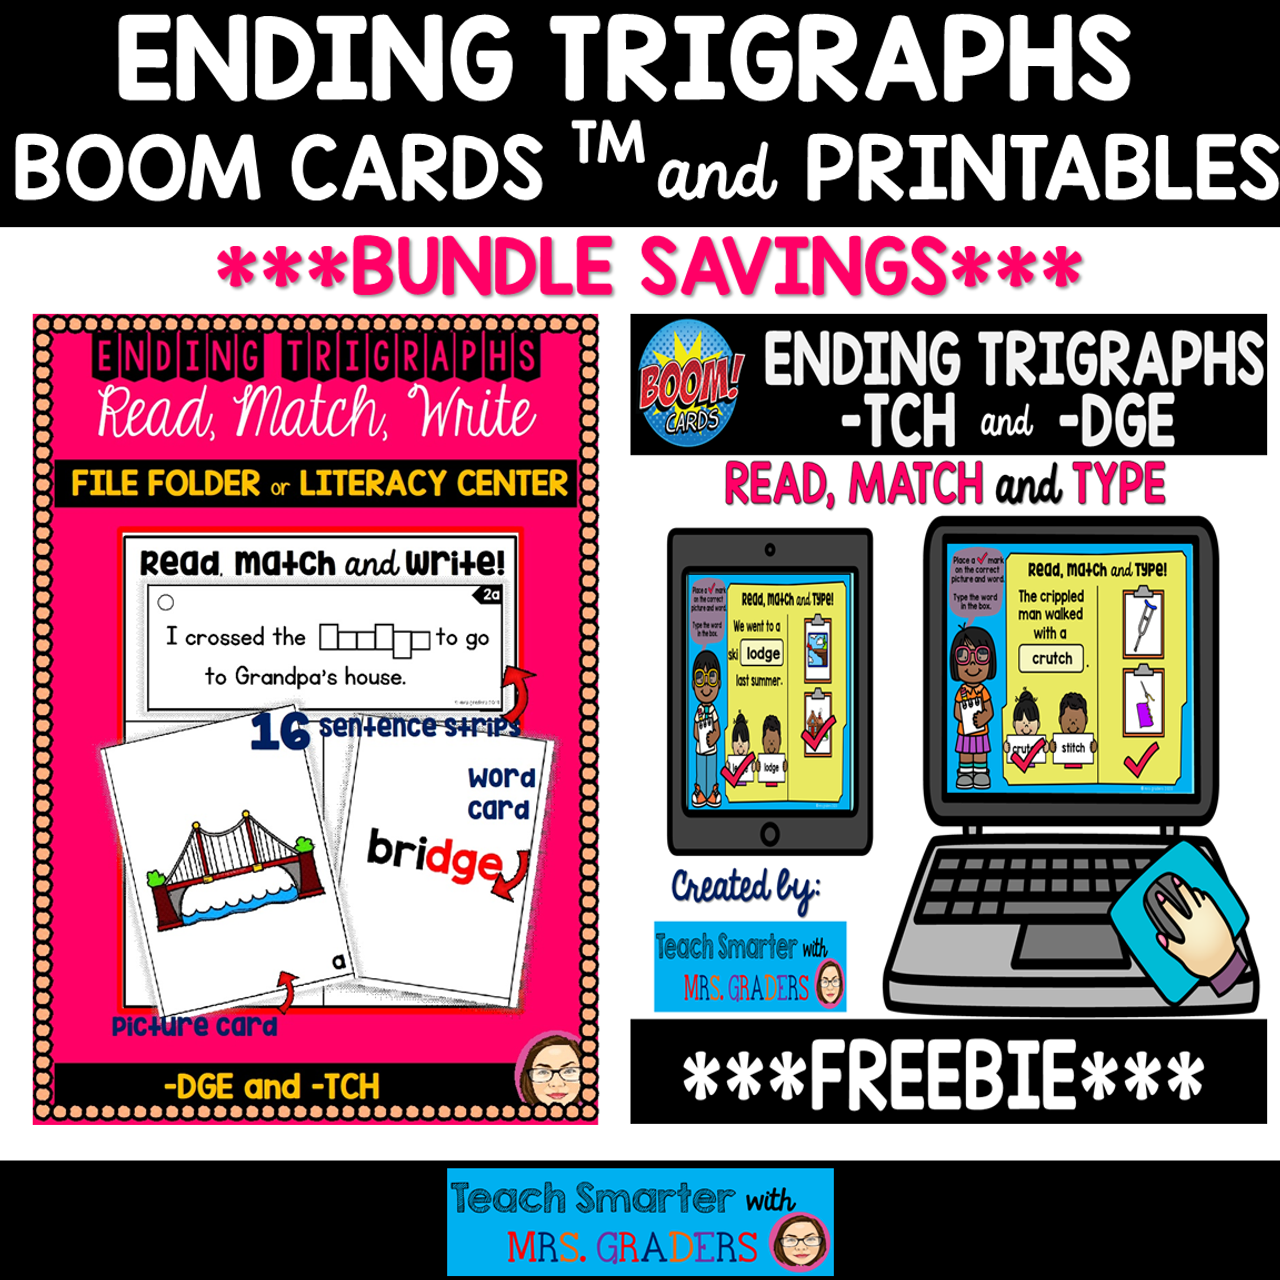 ENDING TRIGRAPHS: READ, WRITE AND MATCH/TYPE BOOM Cards™ and PRINT BUNDLE